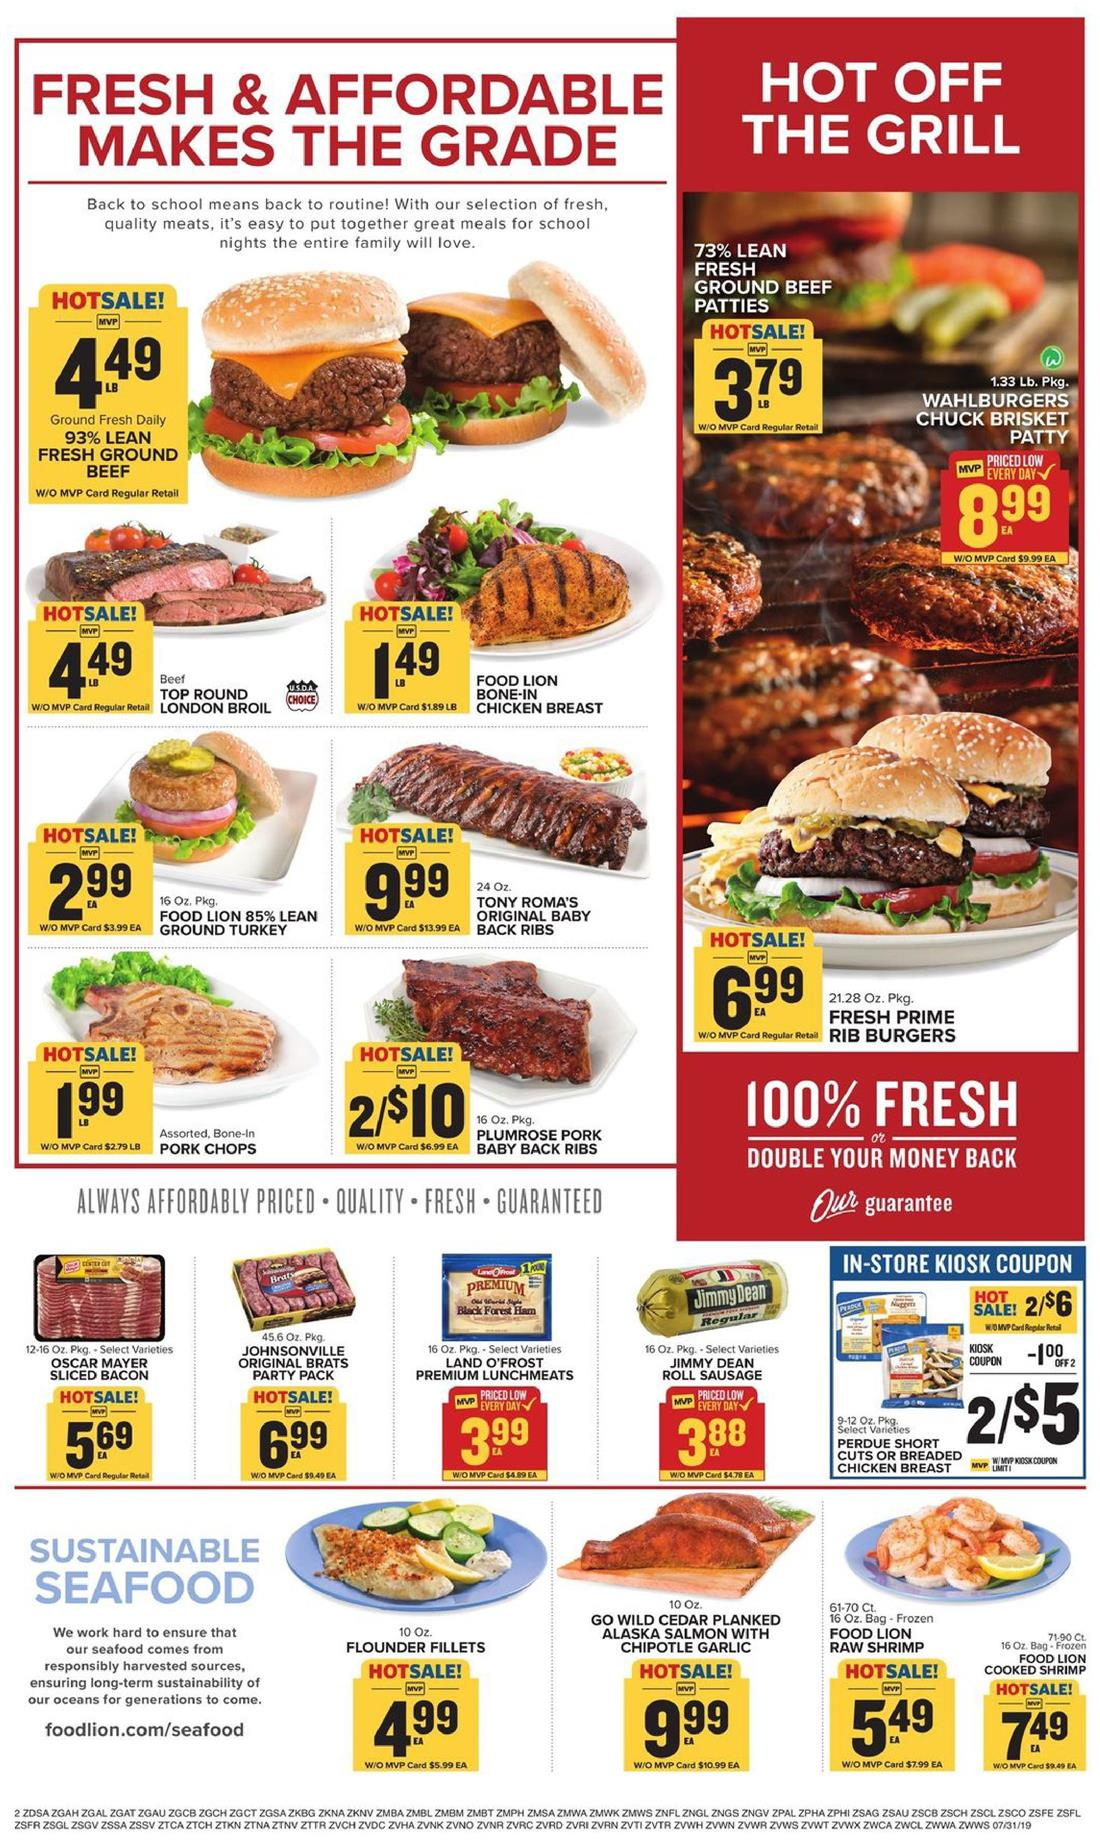 Food Lion Weekly Ad Jul 31 - Aug 6, 2019 (Page 2)